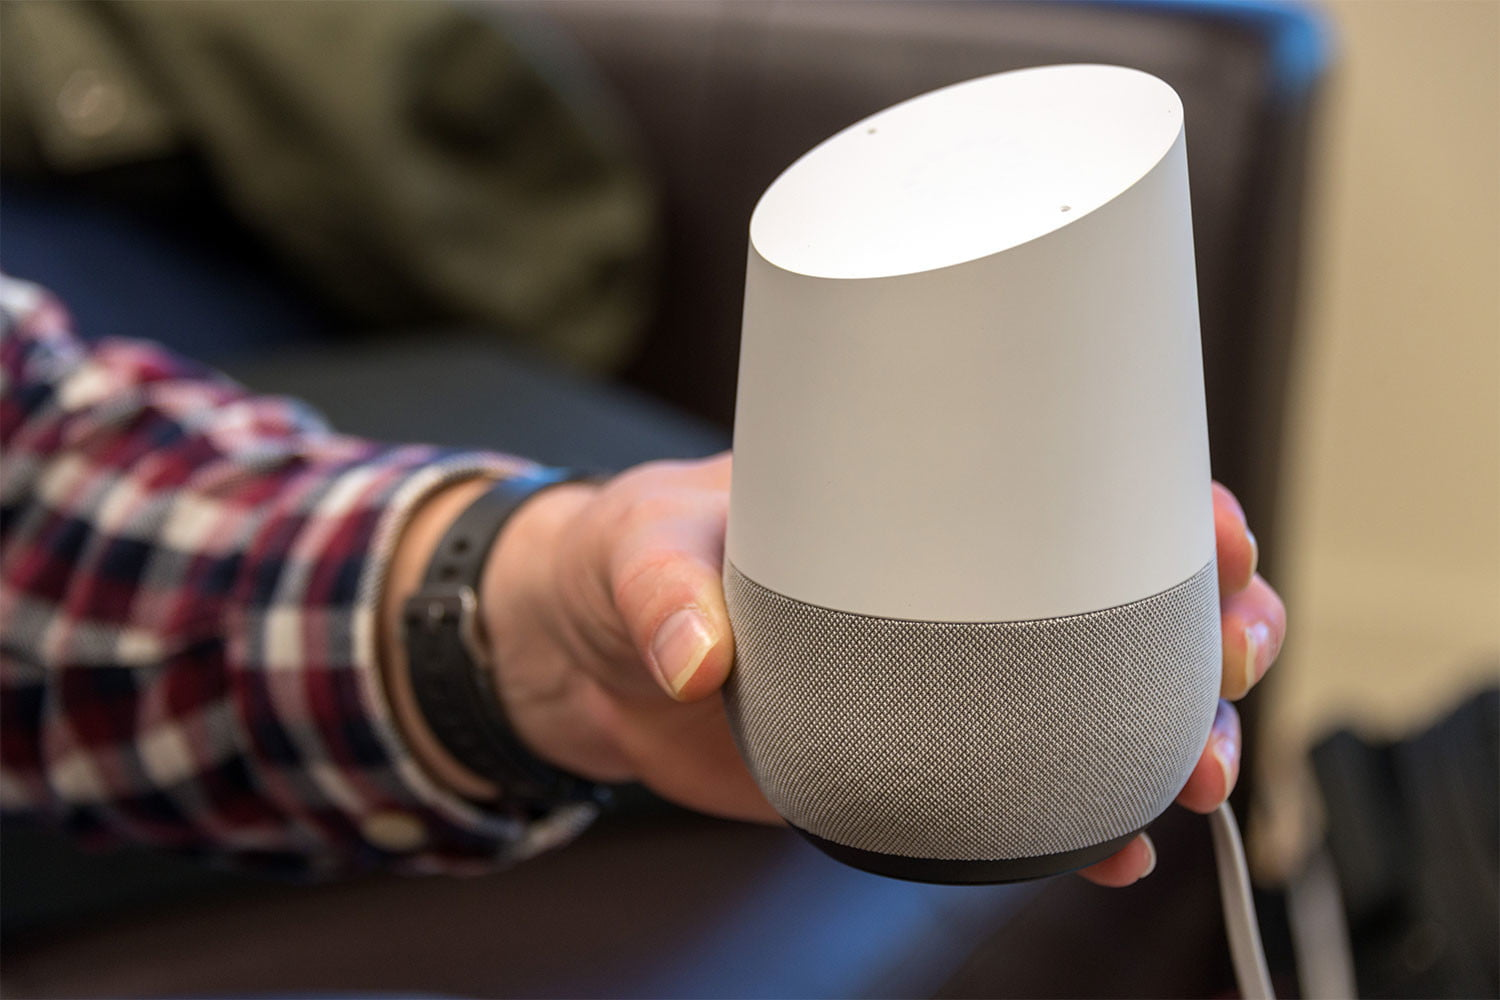 'Hey, Google, what's wrong?' Google Home 'glitch' gets a fix